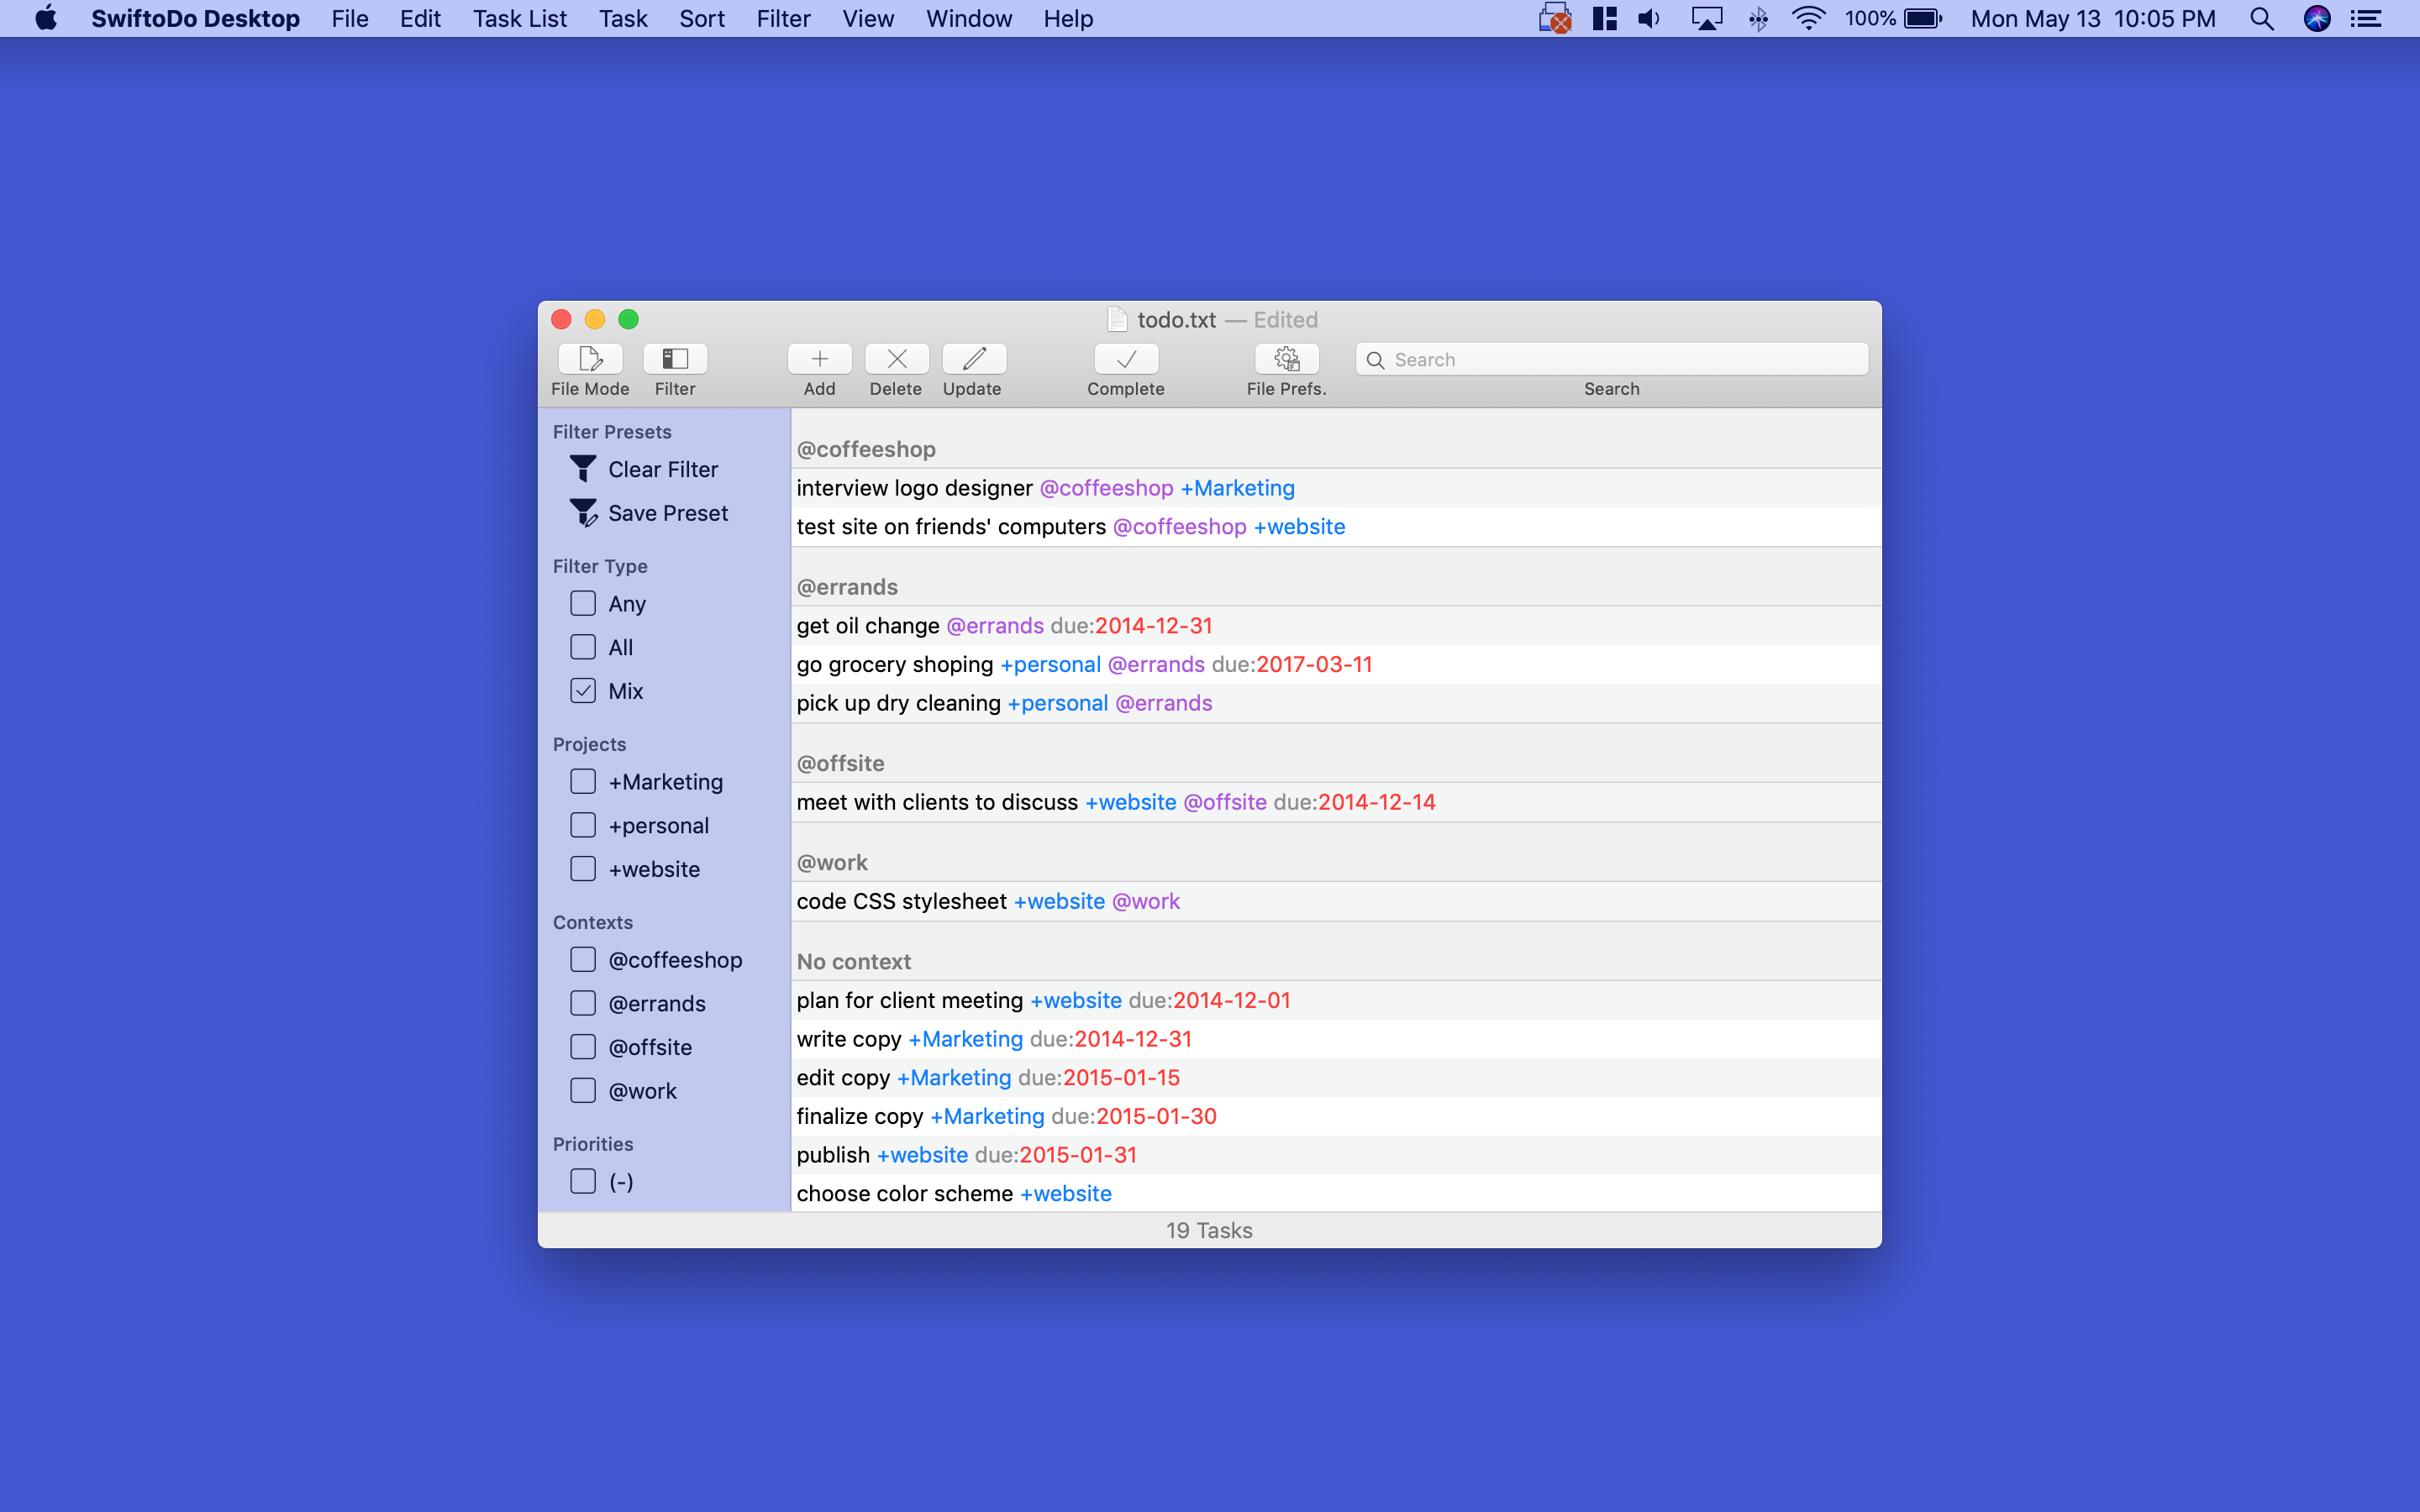 Screenshot of SwiftoDo Desktop's main window, the task list